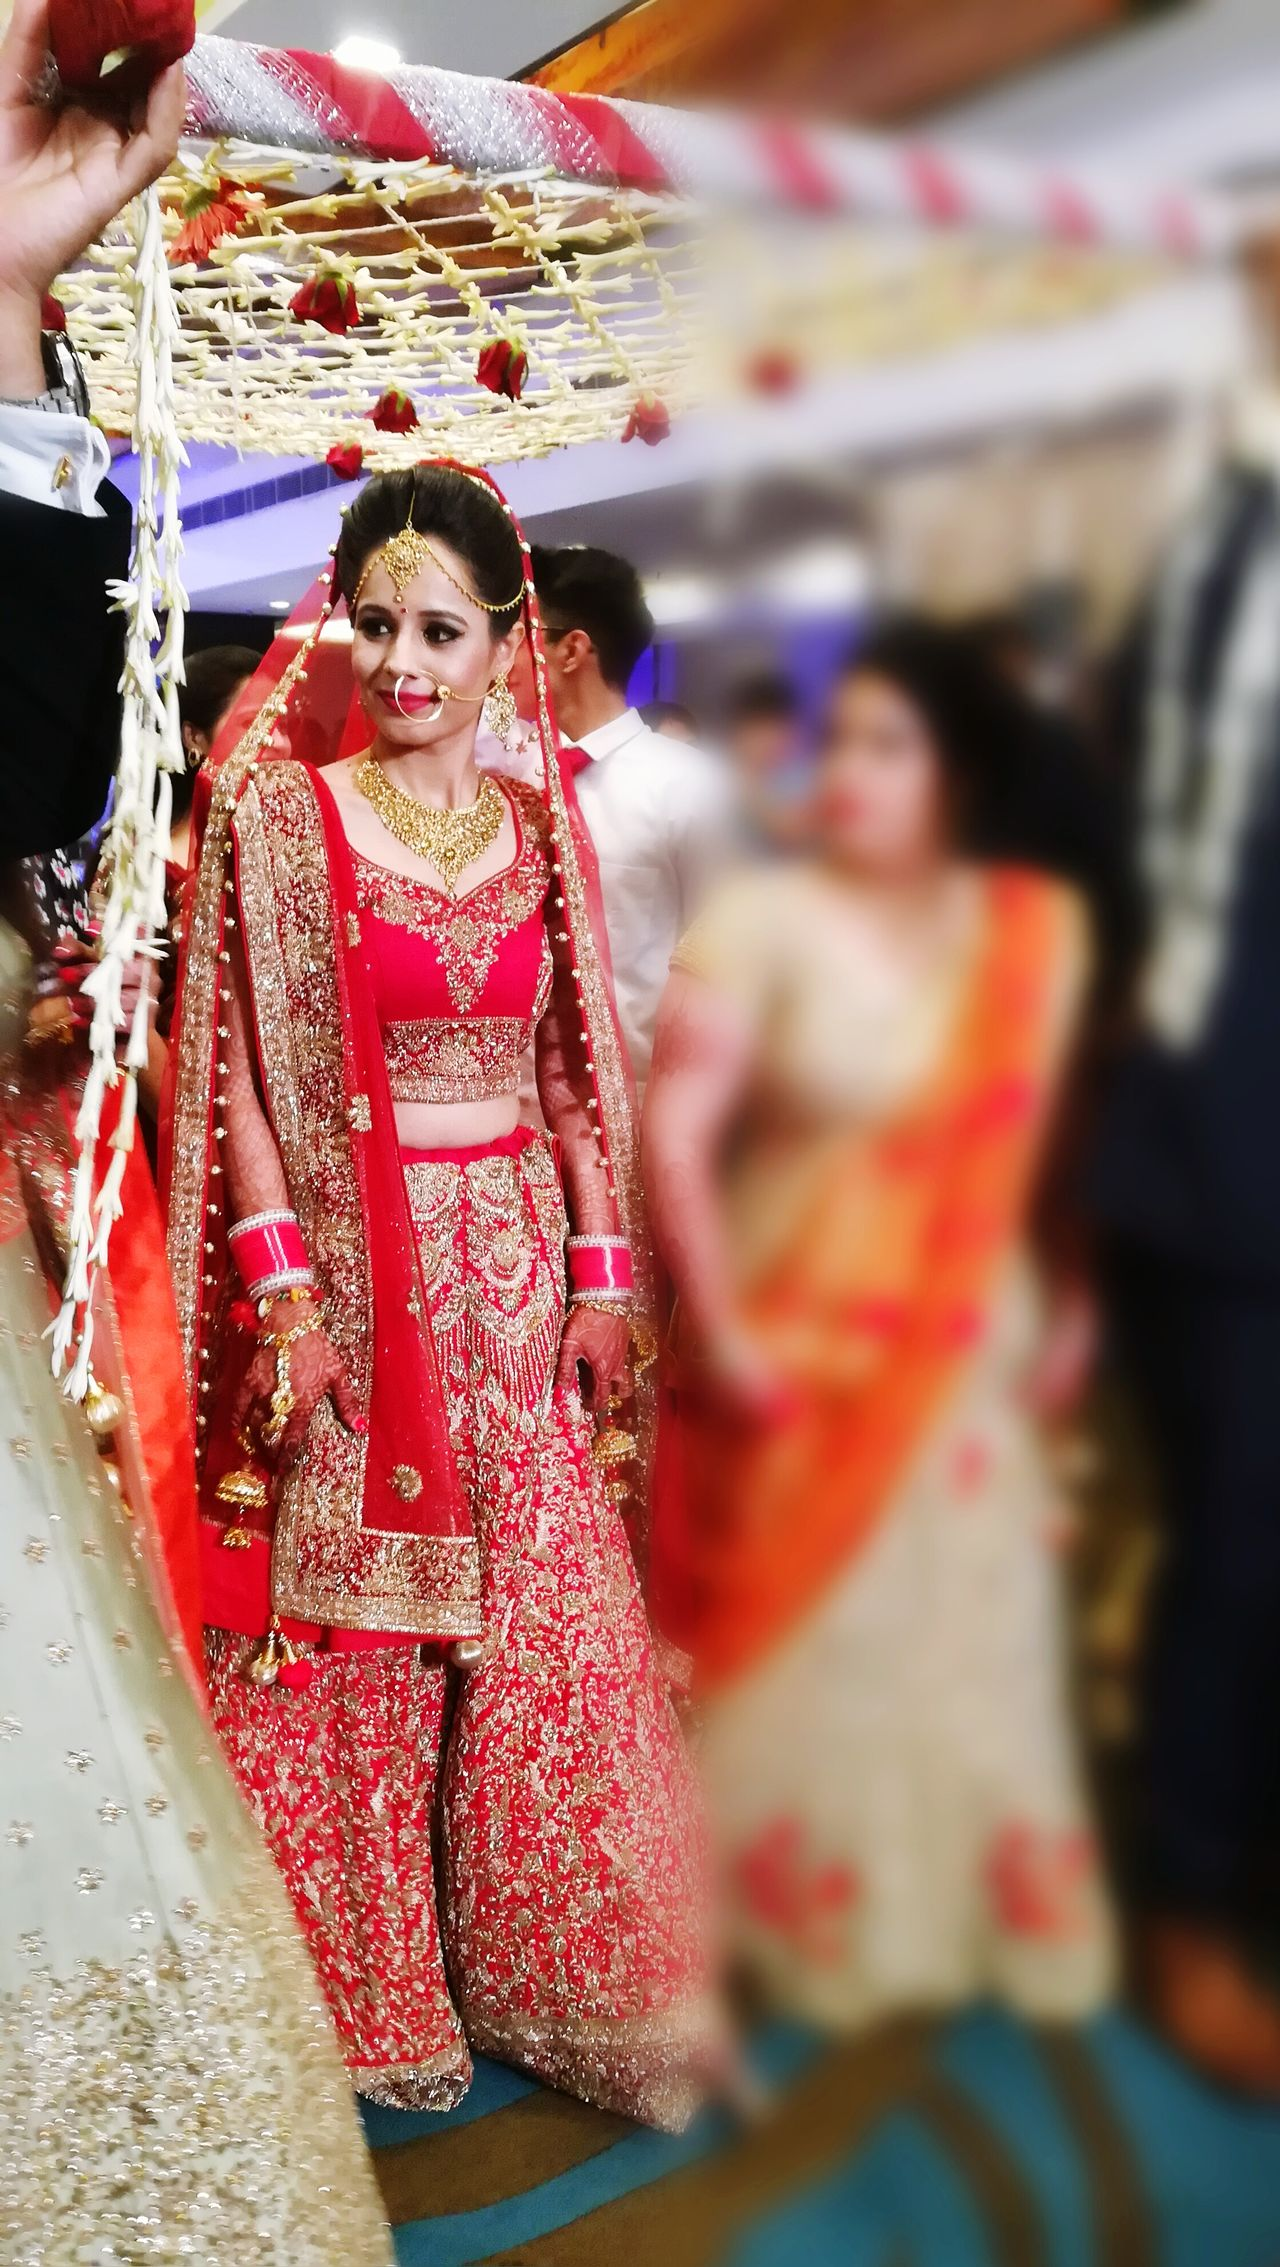 Arts Culture And Entertainment Celebration Fashion Ceremony Bride Multi Colored Beautiful People Beauty Adult Portrait Only Women Wedding Dress Beautiful Woman People Young Women Indoors  Adults Only Happiness BYOPaper! MARRIED ♡♡♡♡♡ EyeEm Best Shots Marriage Ceremony Young Adult Day Close-up